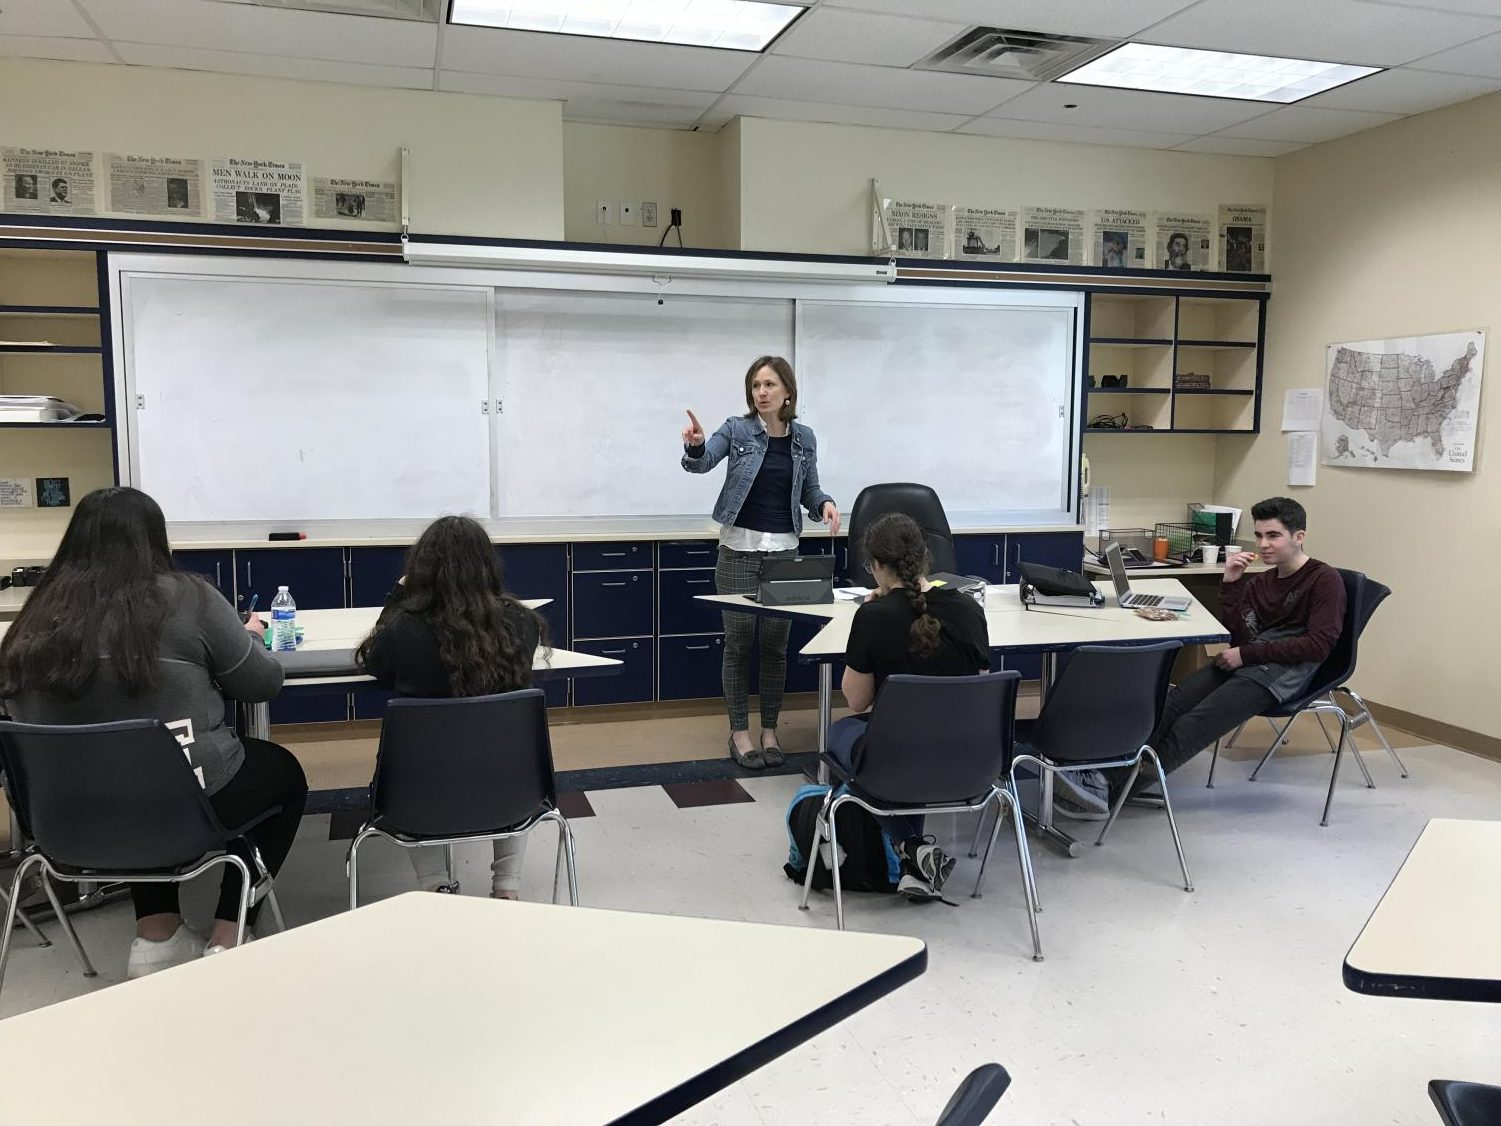 ESOL teacher Rebecca Reiser gives instructions to her students before handing out a quiz. The goal of the quiz was to help improve the students' English grammar skills.